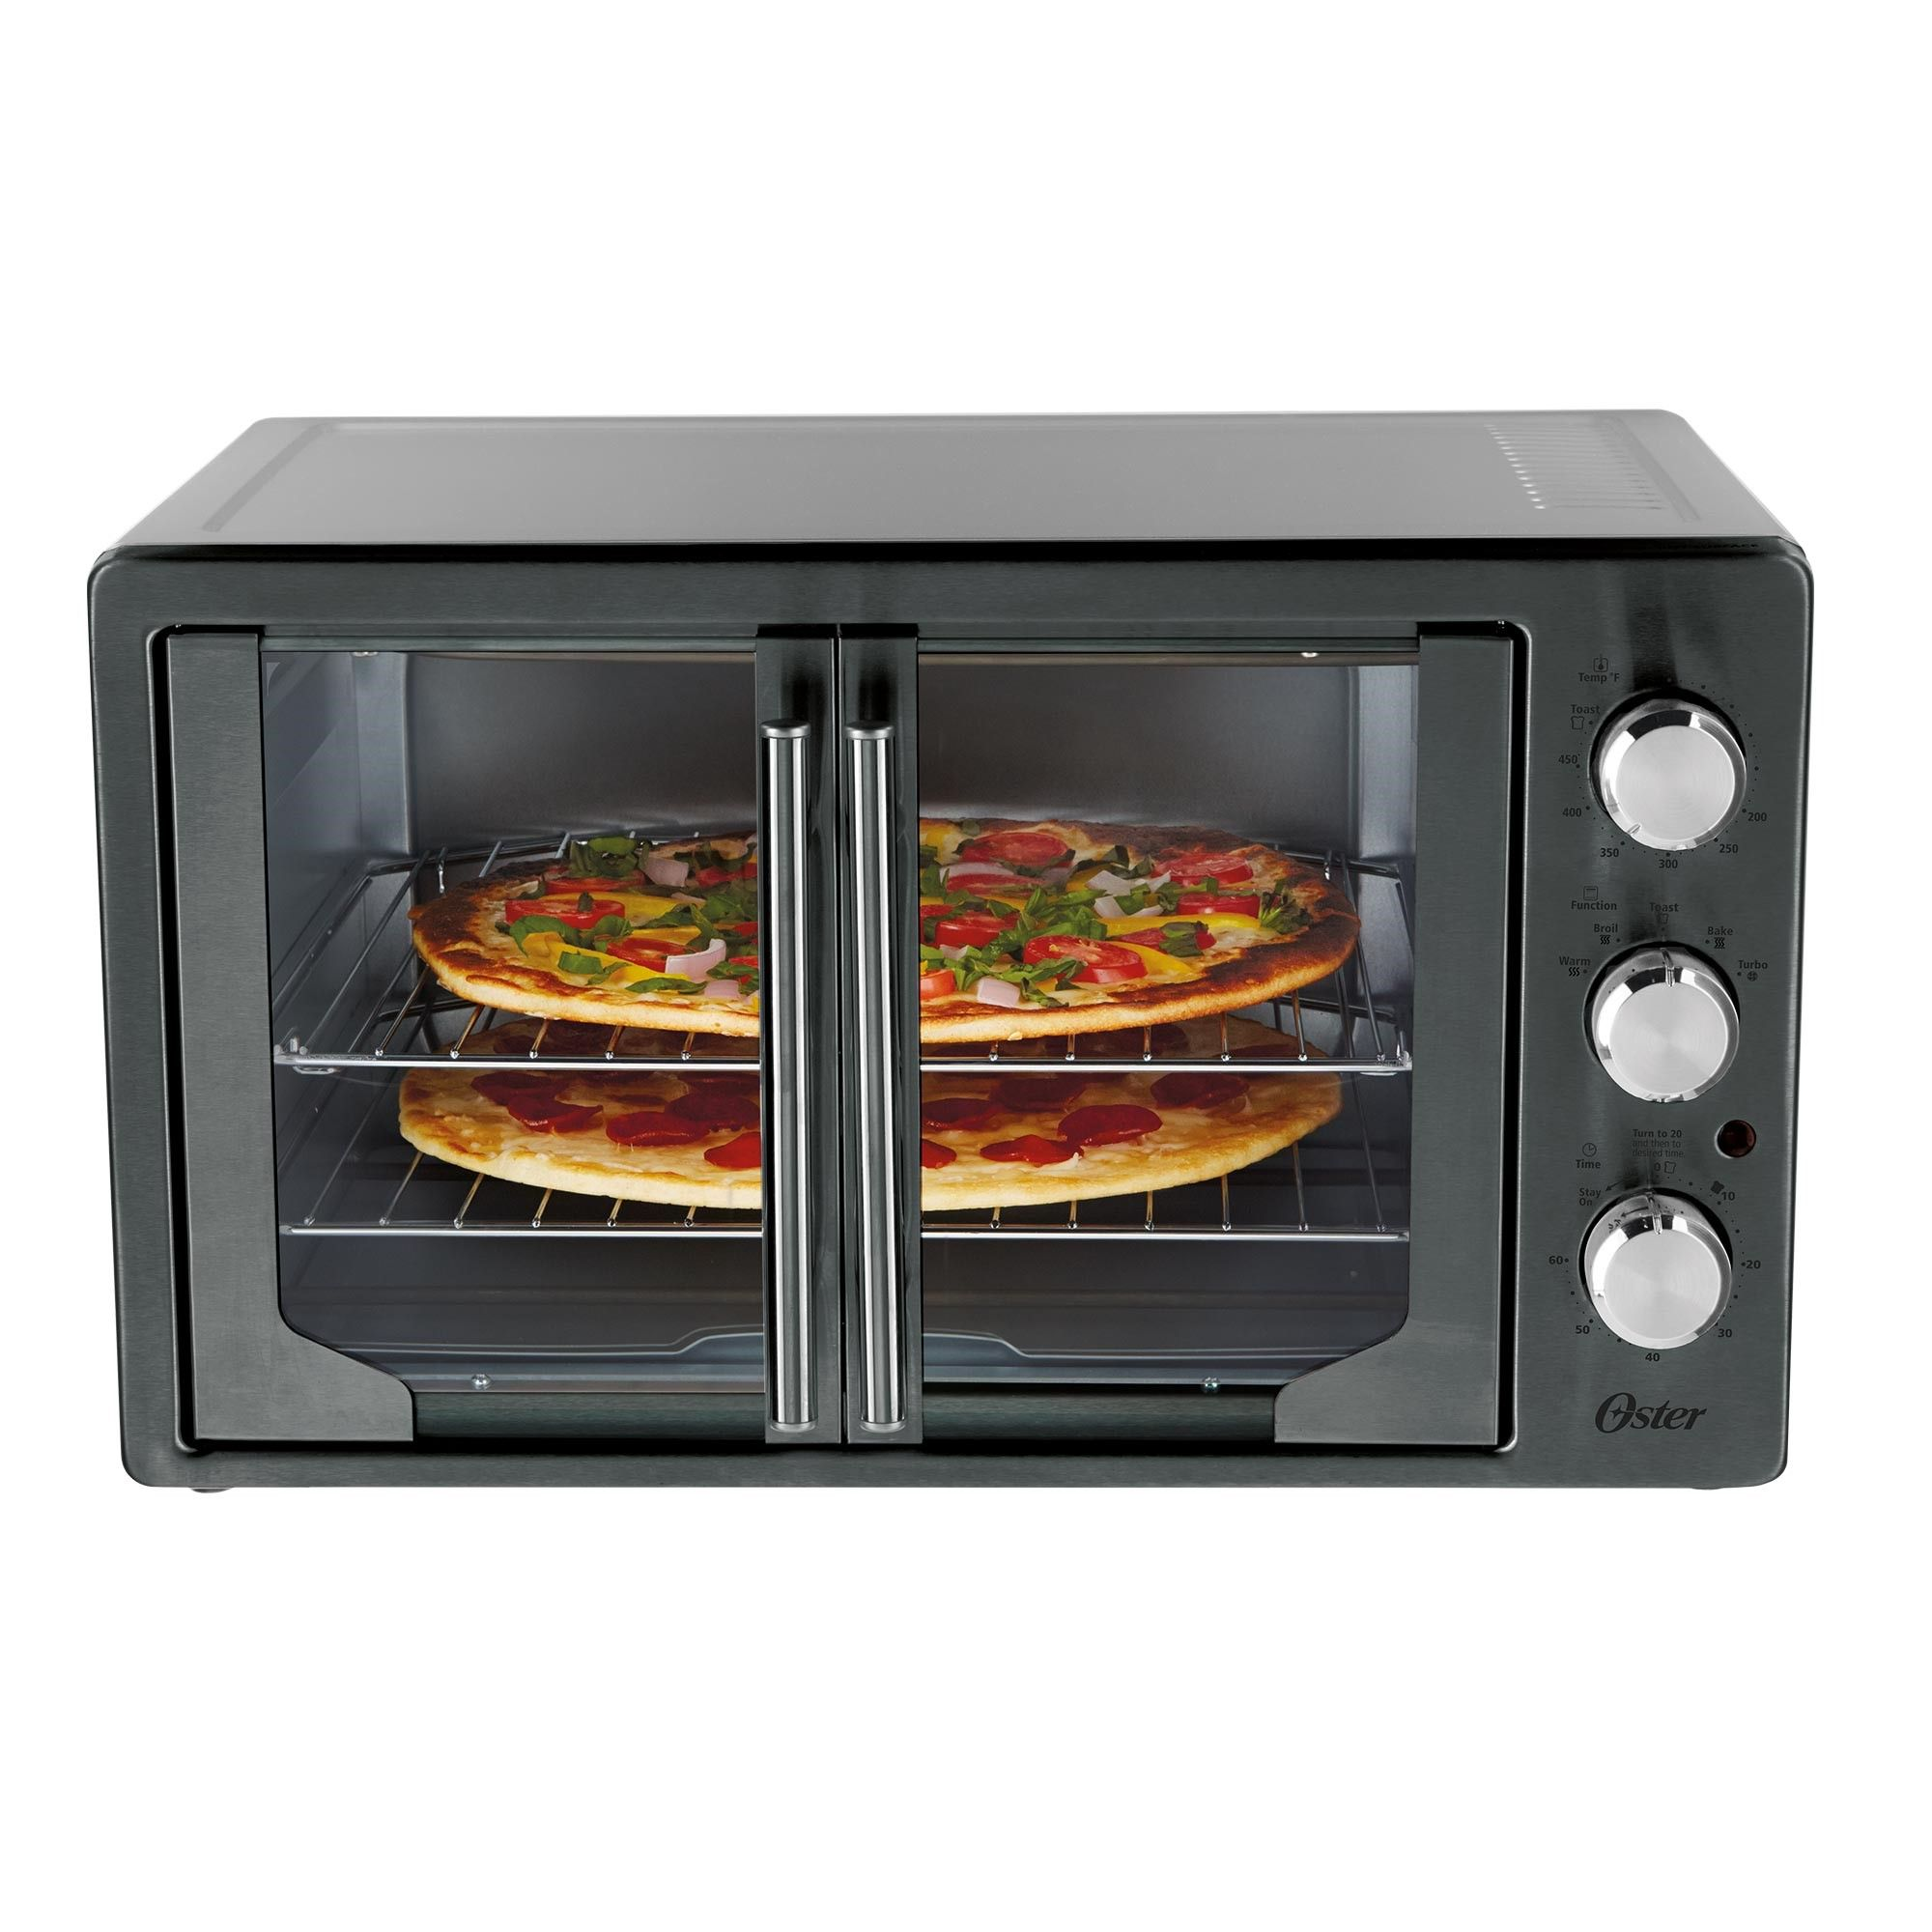 Oster Metallic Charcoal French Door Oven With Convection